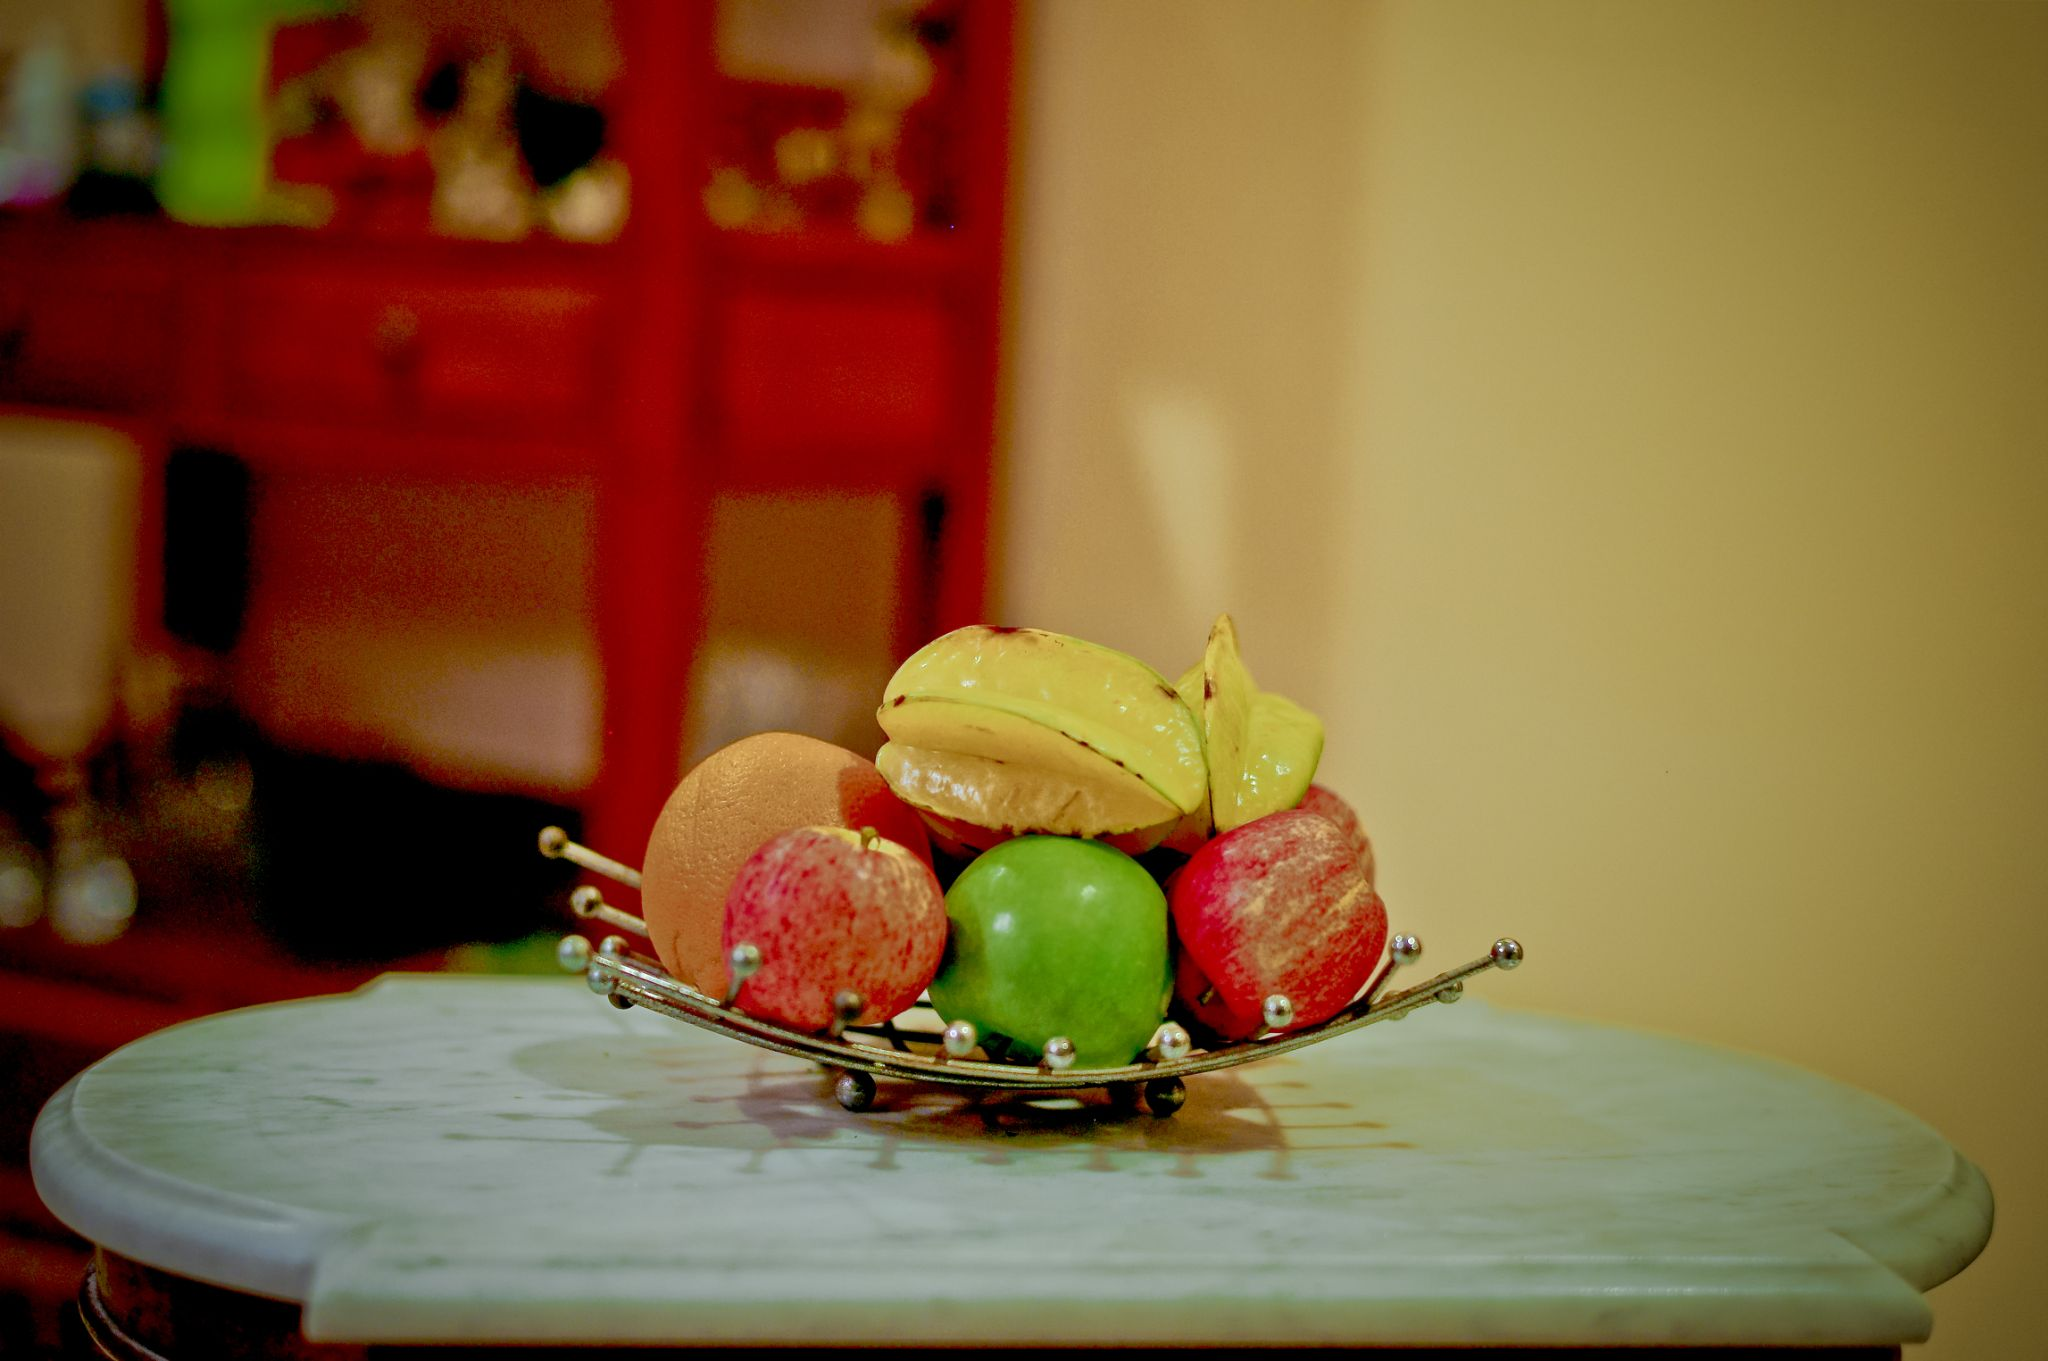 Still life - fruits by Victor Kam